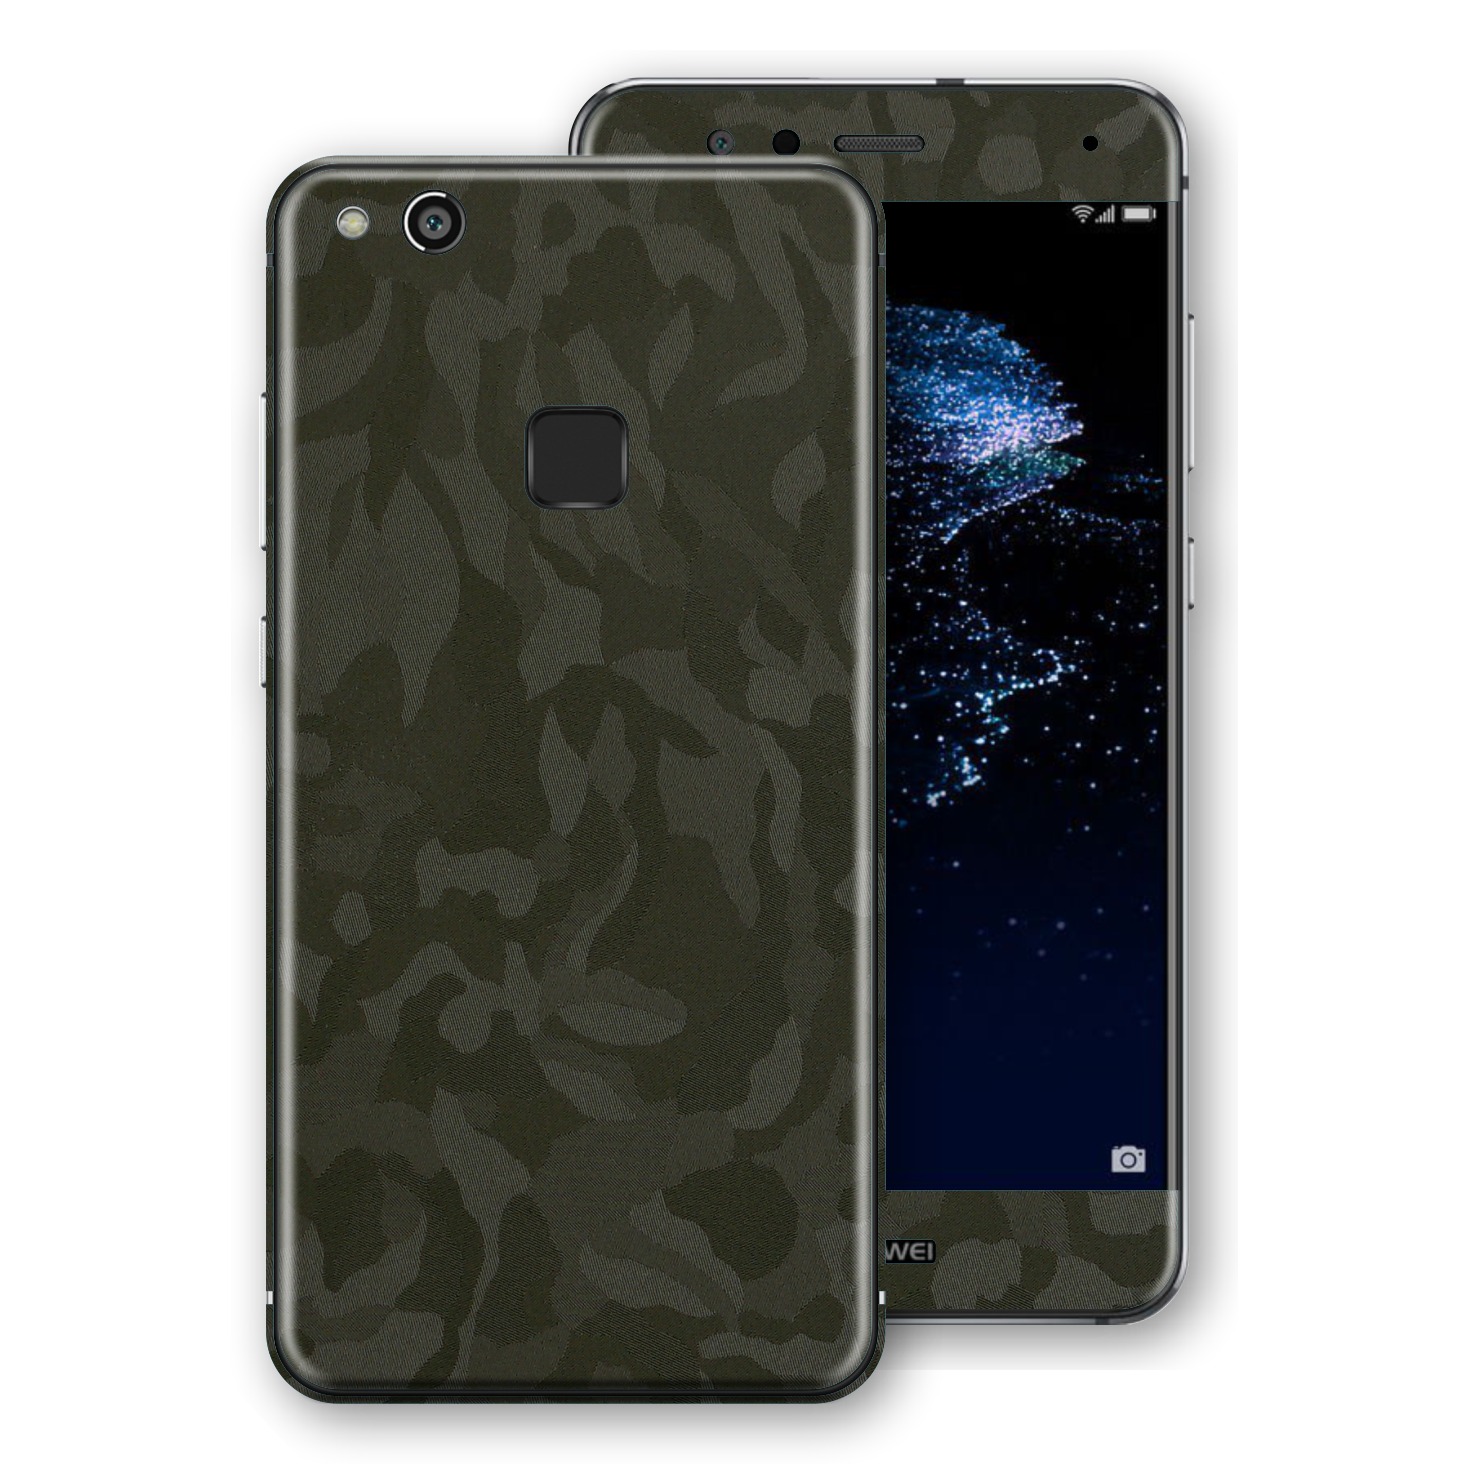 Huawei P10 LITE Luxuria Green Camo Camouflage 3D Textured Skin Wrap Decal by EasySkinz